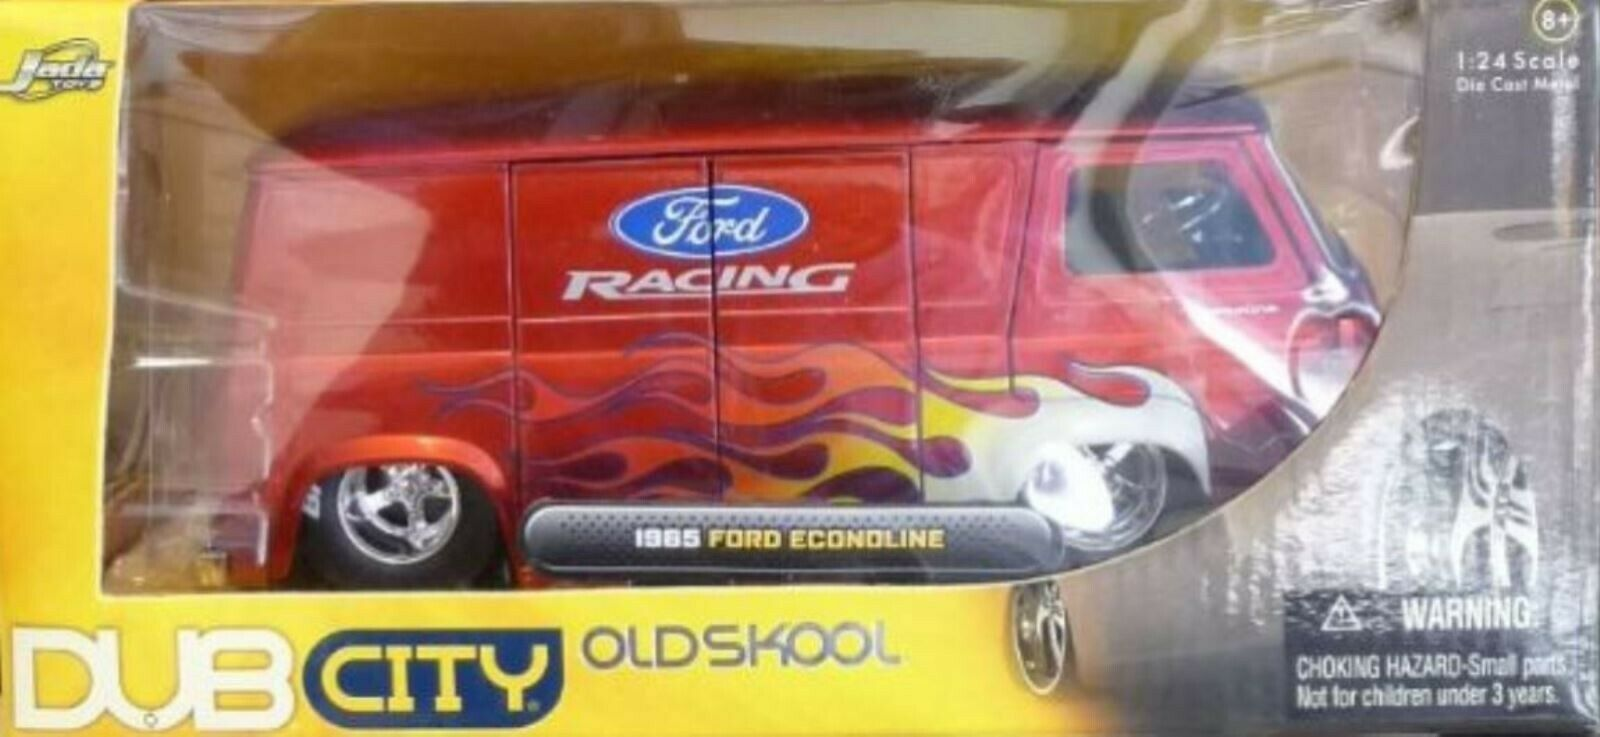 WOW EXTREMELY RARE Ford Econoline Van 'Ford Racing' Flames Flames Flames 1965 Red m 1 24 Jada 465555